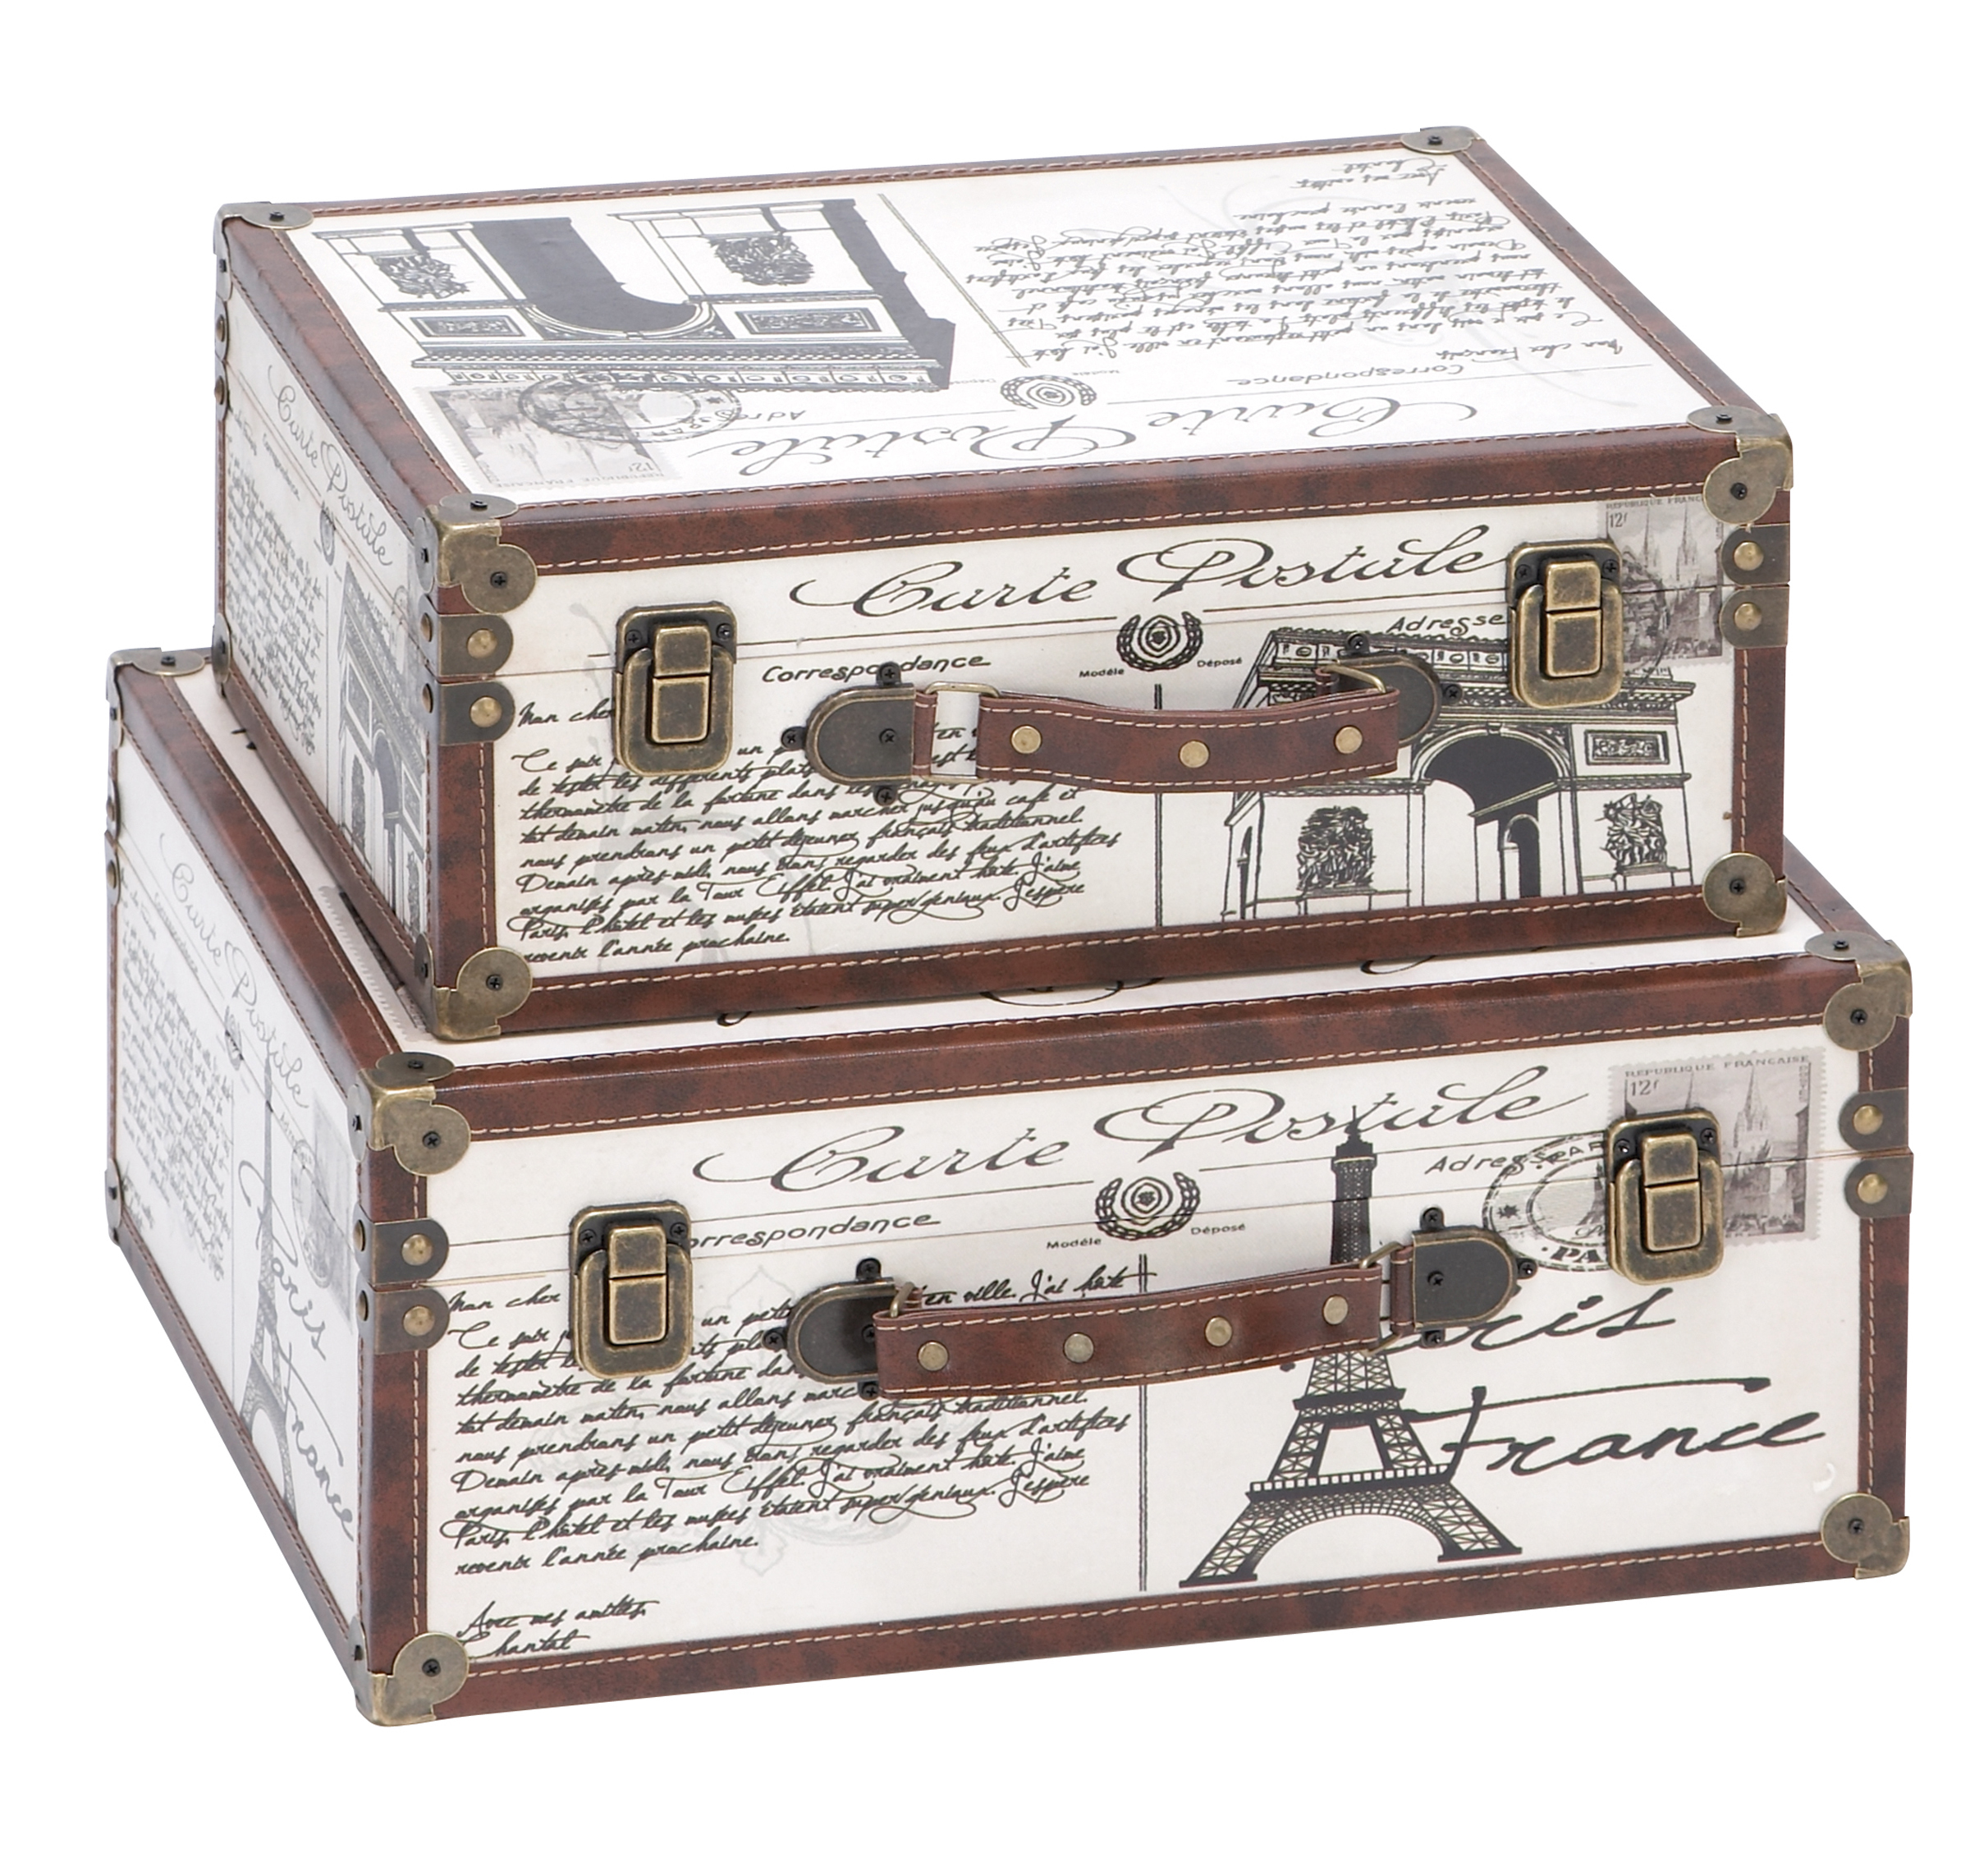 Decmode Set of 2 Traditional 15 and 17 Inch Carte Postale Wood and Leather Suitcase Boxes, White